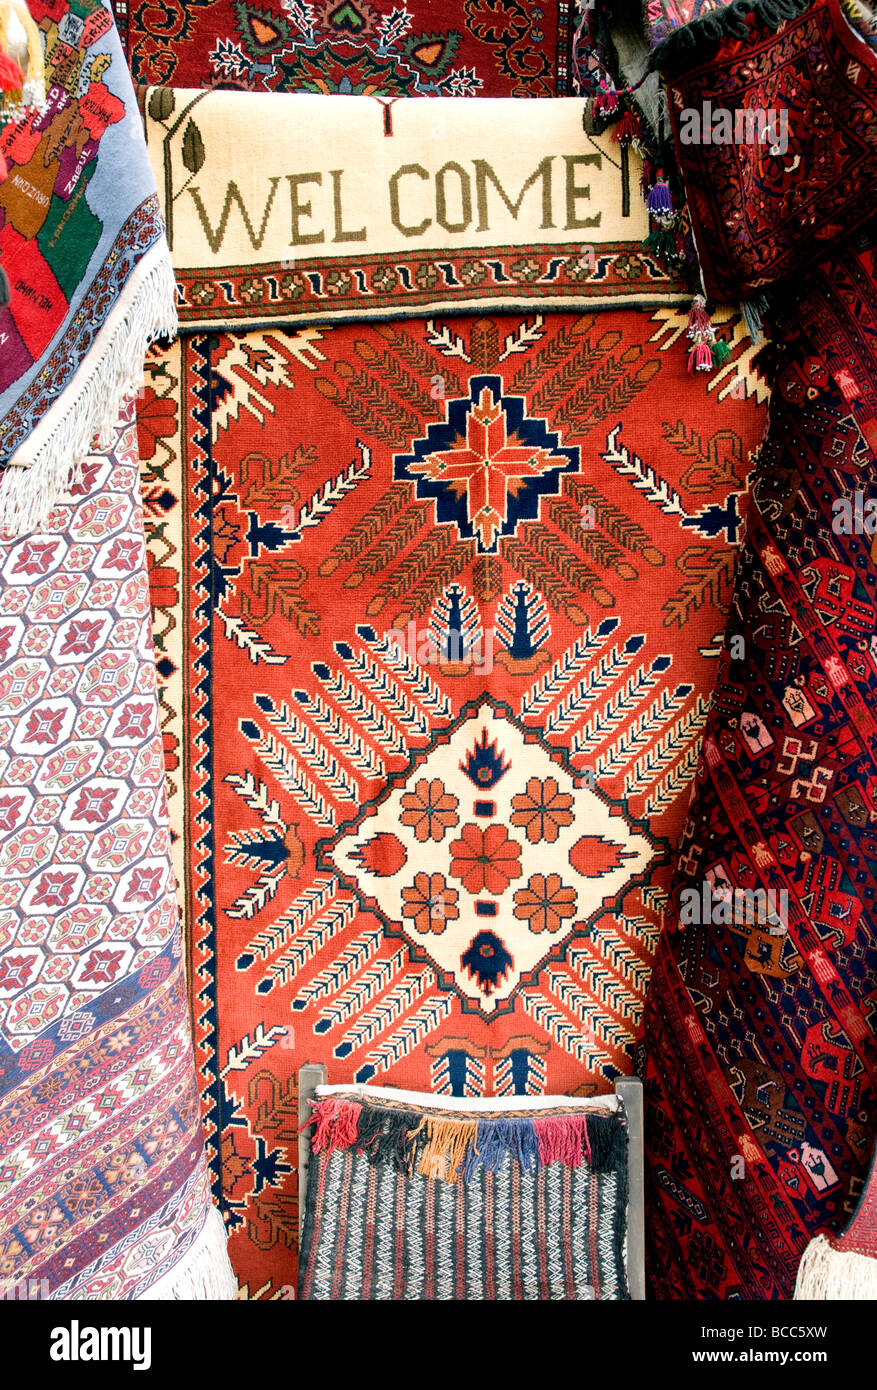 A Welcome motif worked into a carpet in a carpet shop in Kabul; Afghanistan is long renowned for its high quality - Stock Image